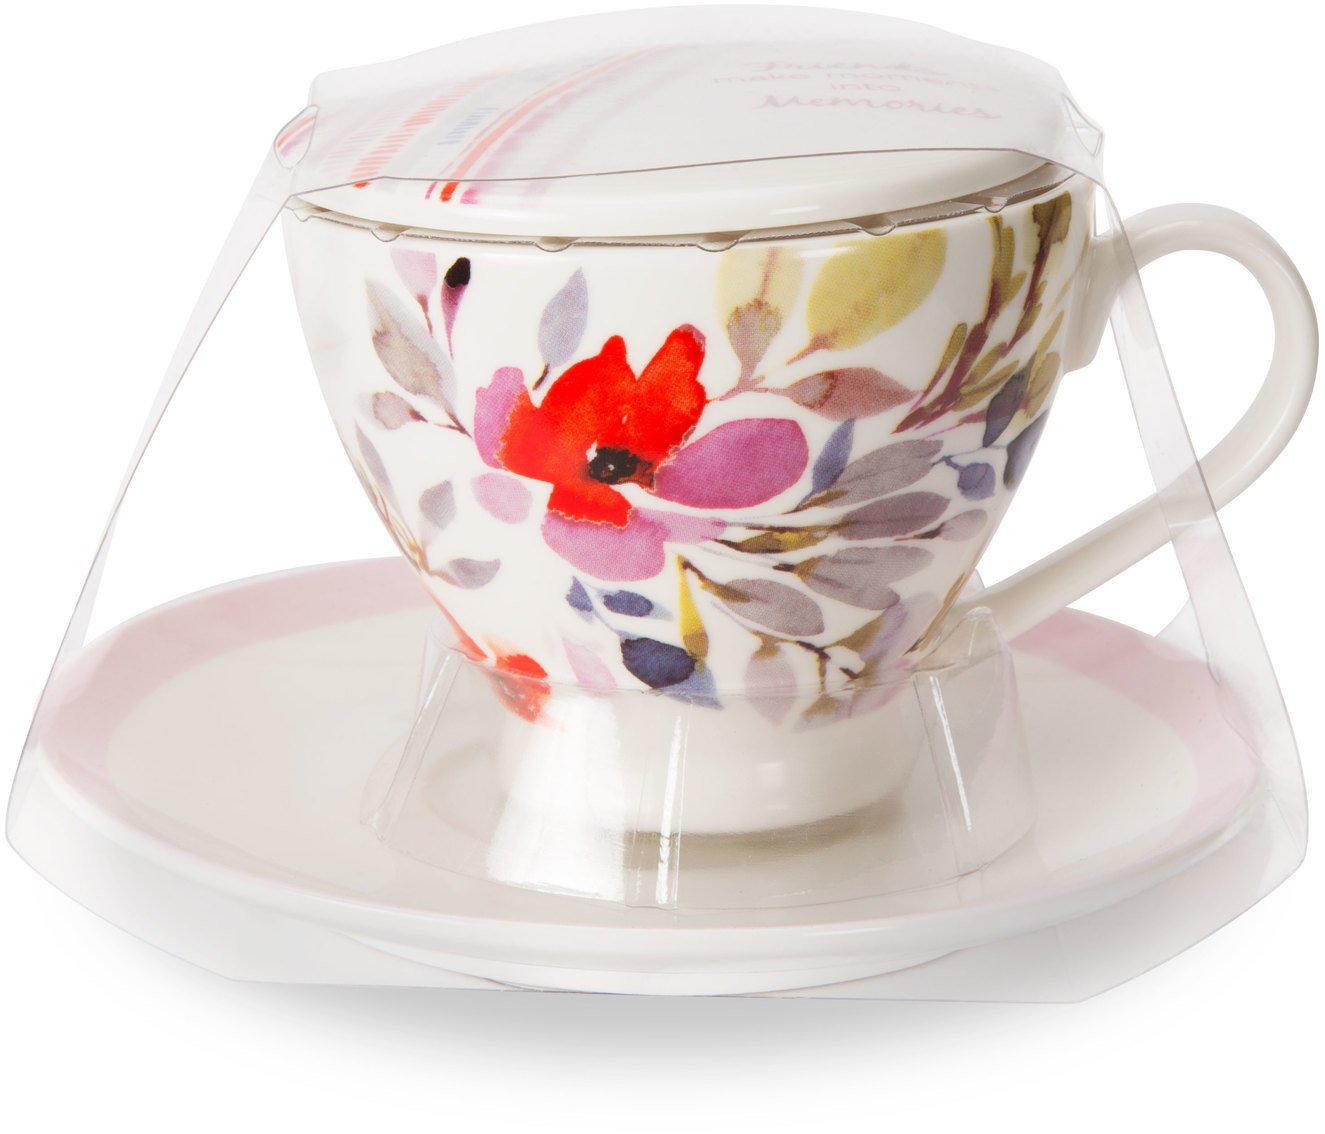 Flora by Stephanie Ryan 87223 Friends Make Moments into Memories Three Piece Saucer Lid and Tea Cup Set with Light Pink Floral Design Pink